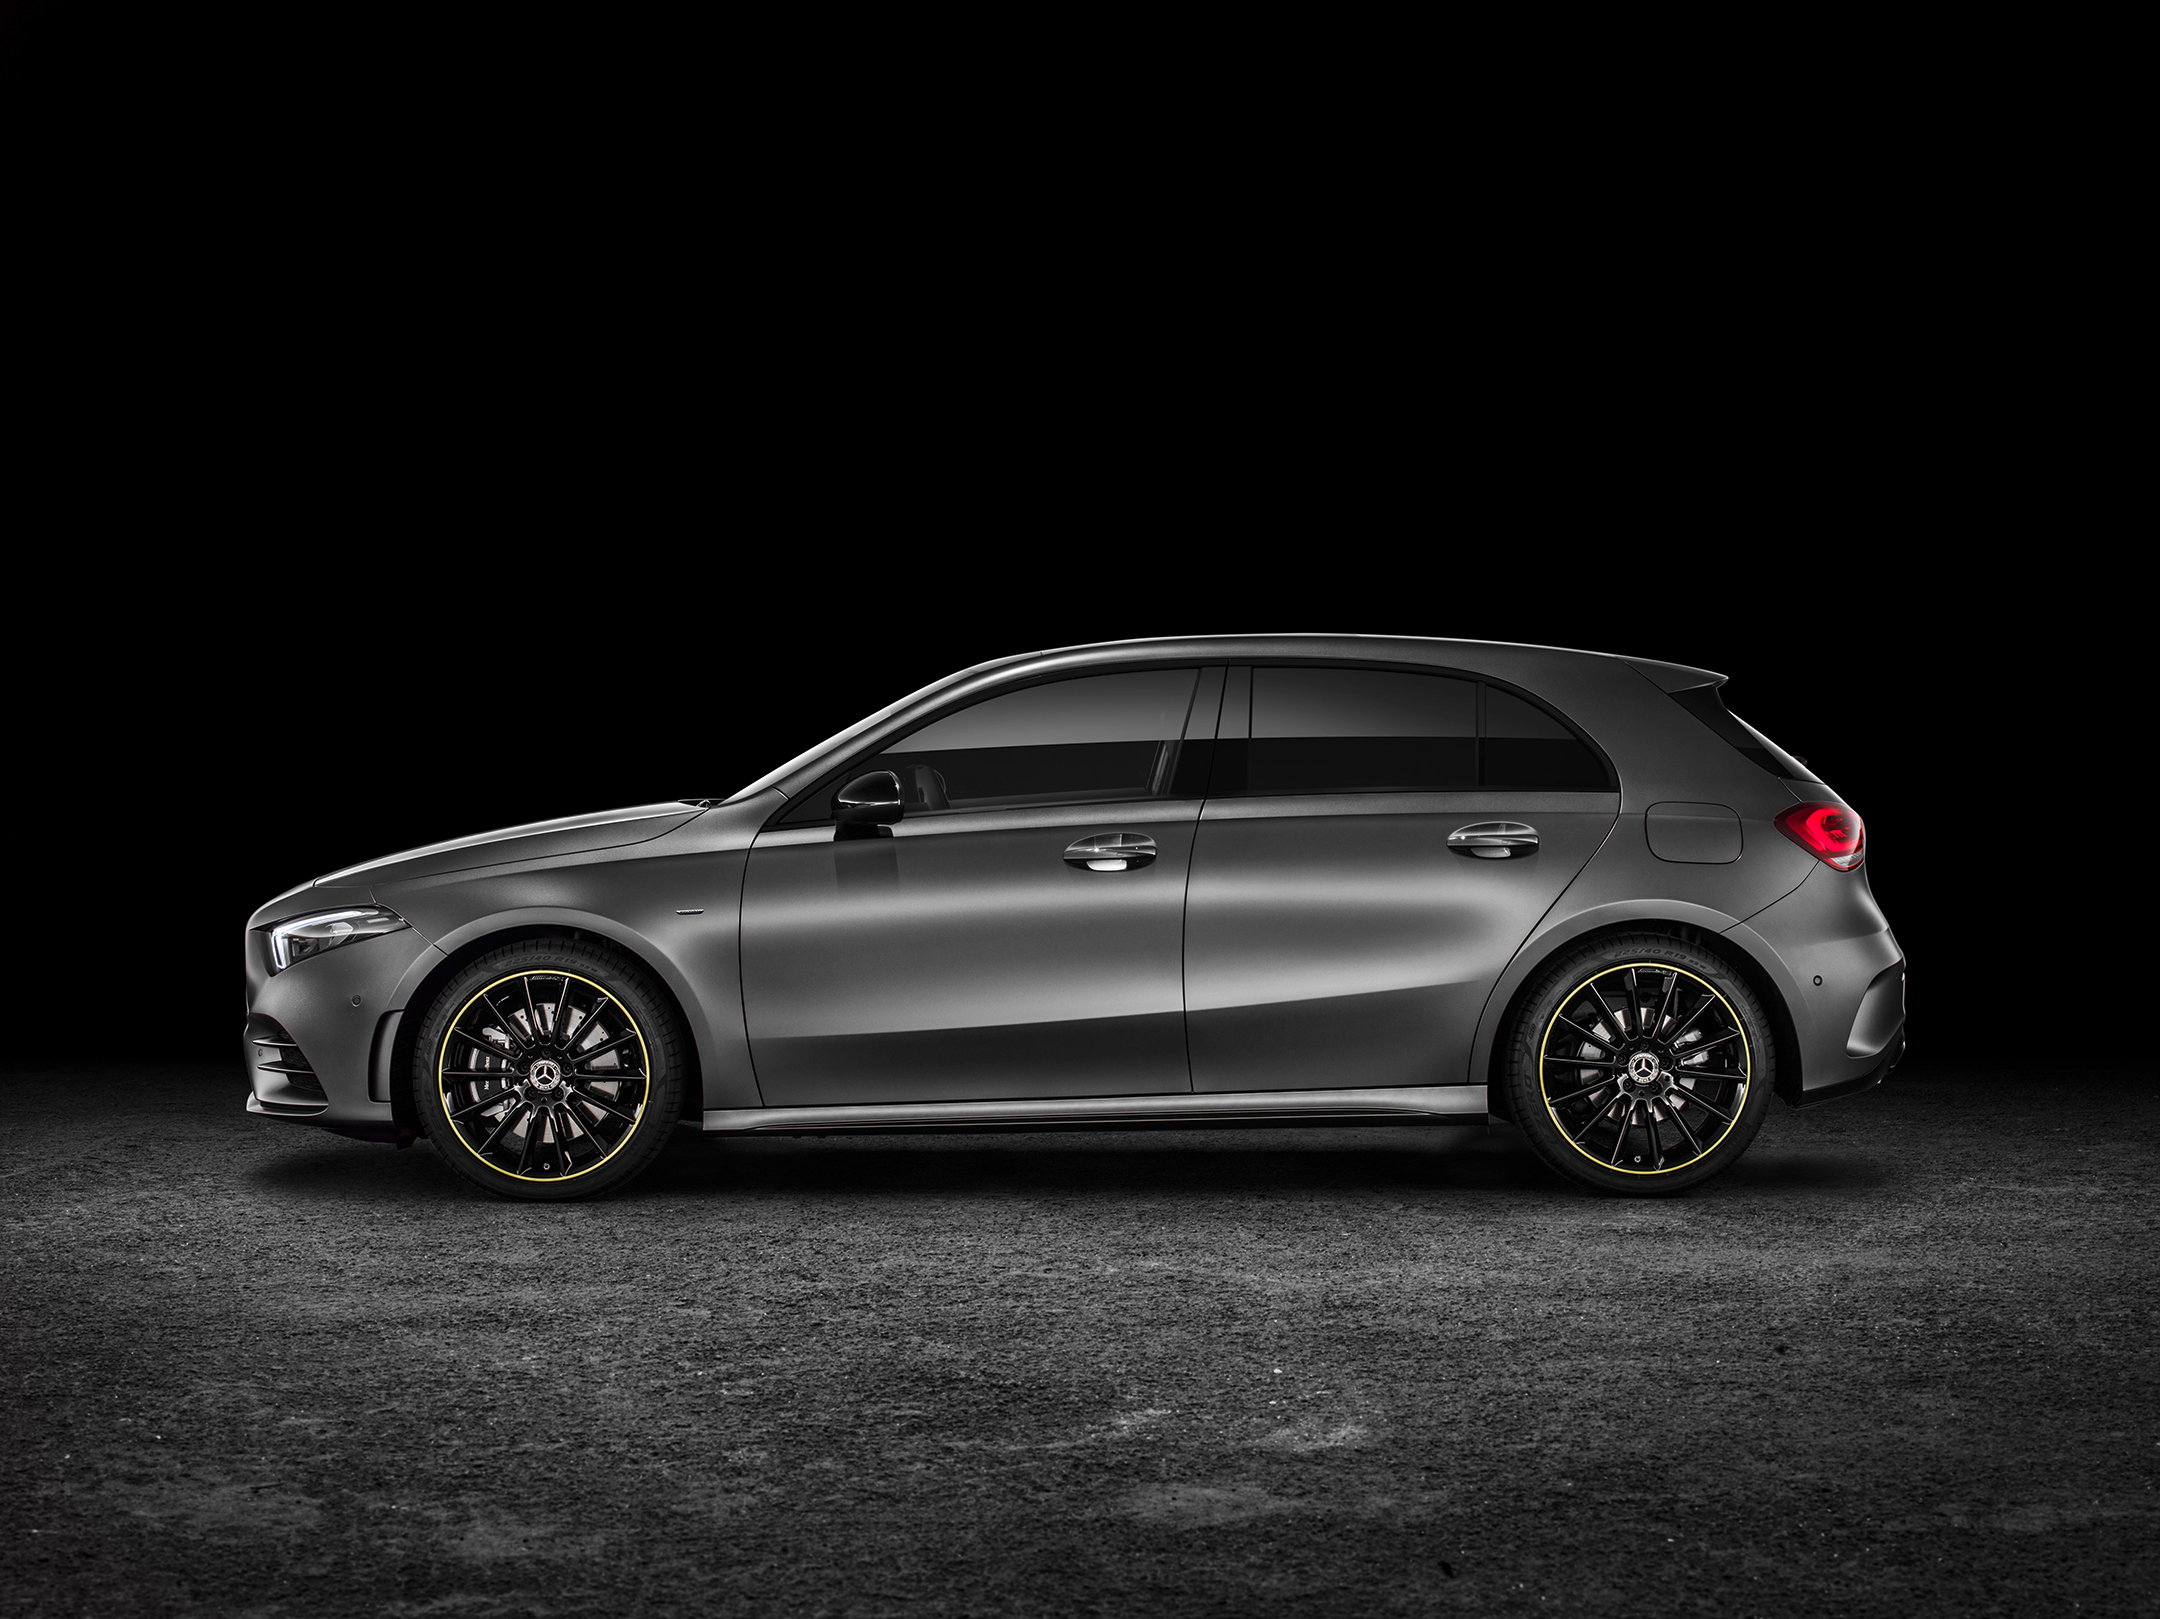 Mercedes-Benz A-Class - 2018 - side-face / profil